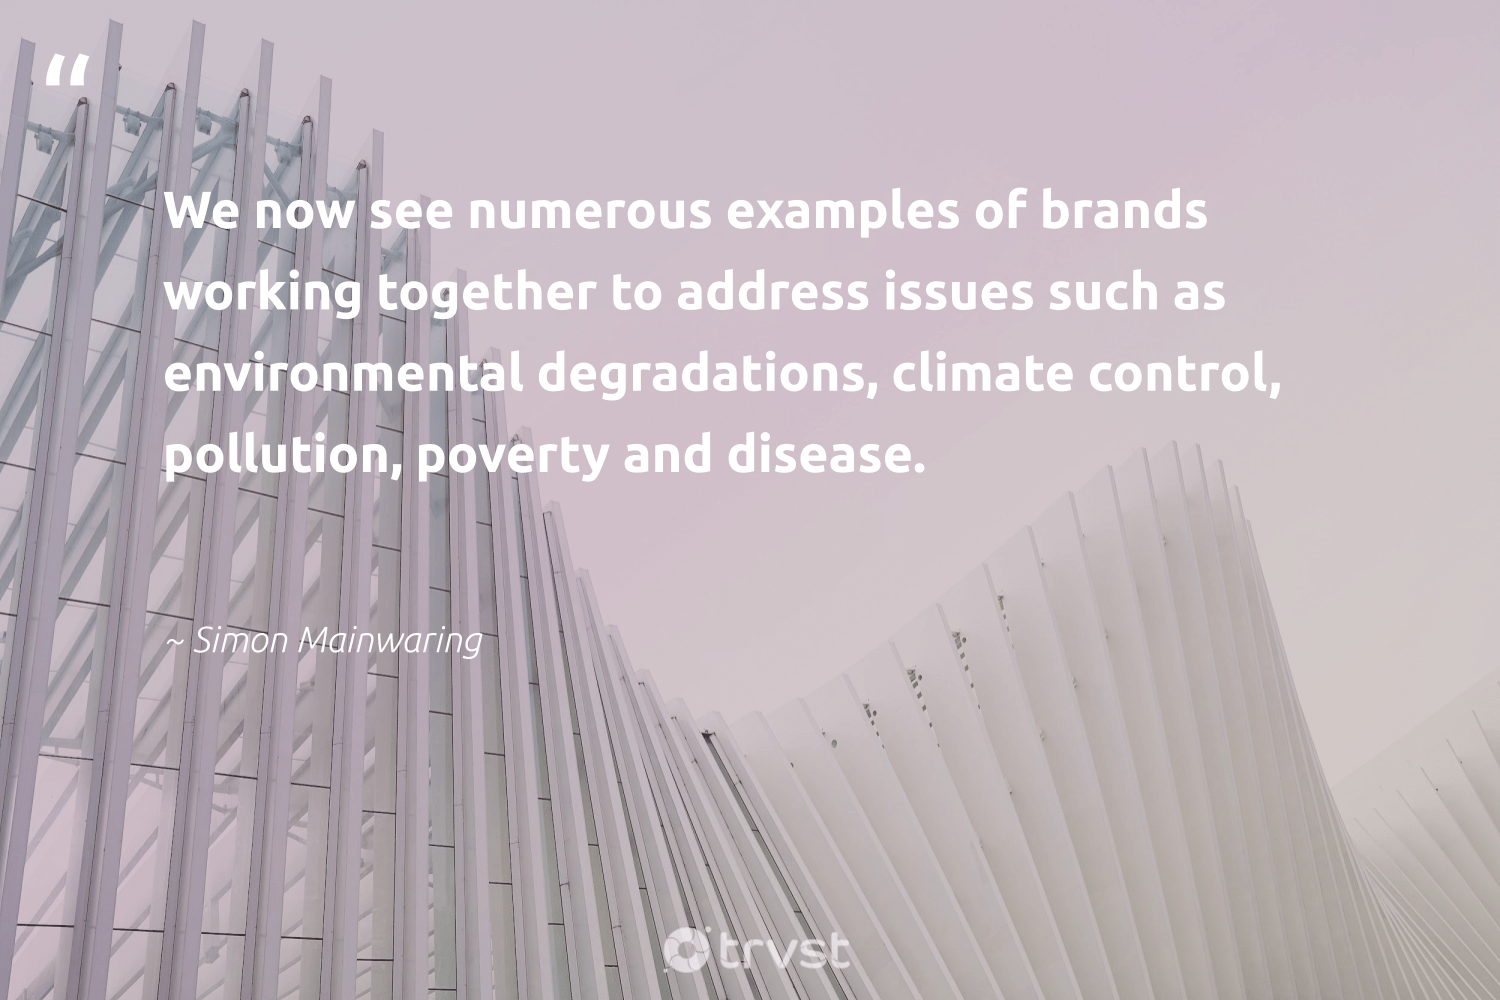 """""""We now see numerous examples of brands working together to address issues such as environmental degradations, climate control, pollution, poverty and disease.""""  - Simon Mainwaring #trvst #quotes #environmental #pollution #climate #poverty #workingtogether #spill #ecoconscious #wildernessnation #dogood #pollute"""